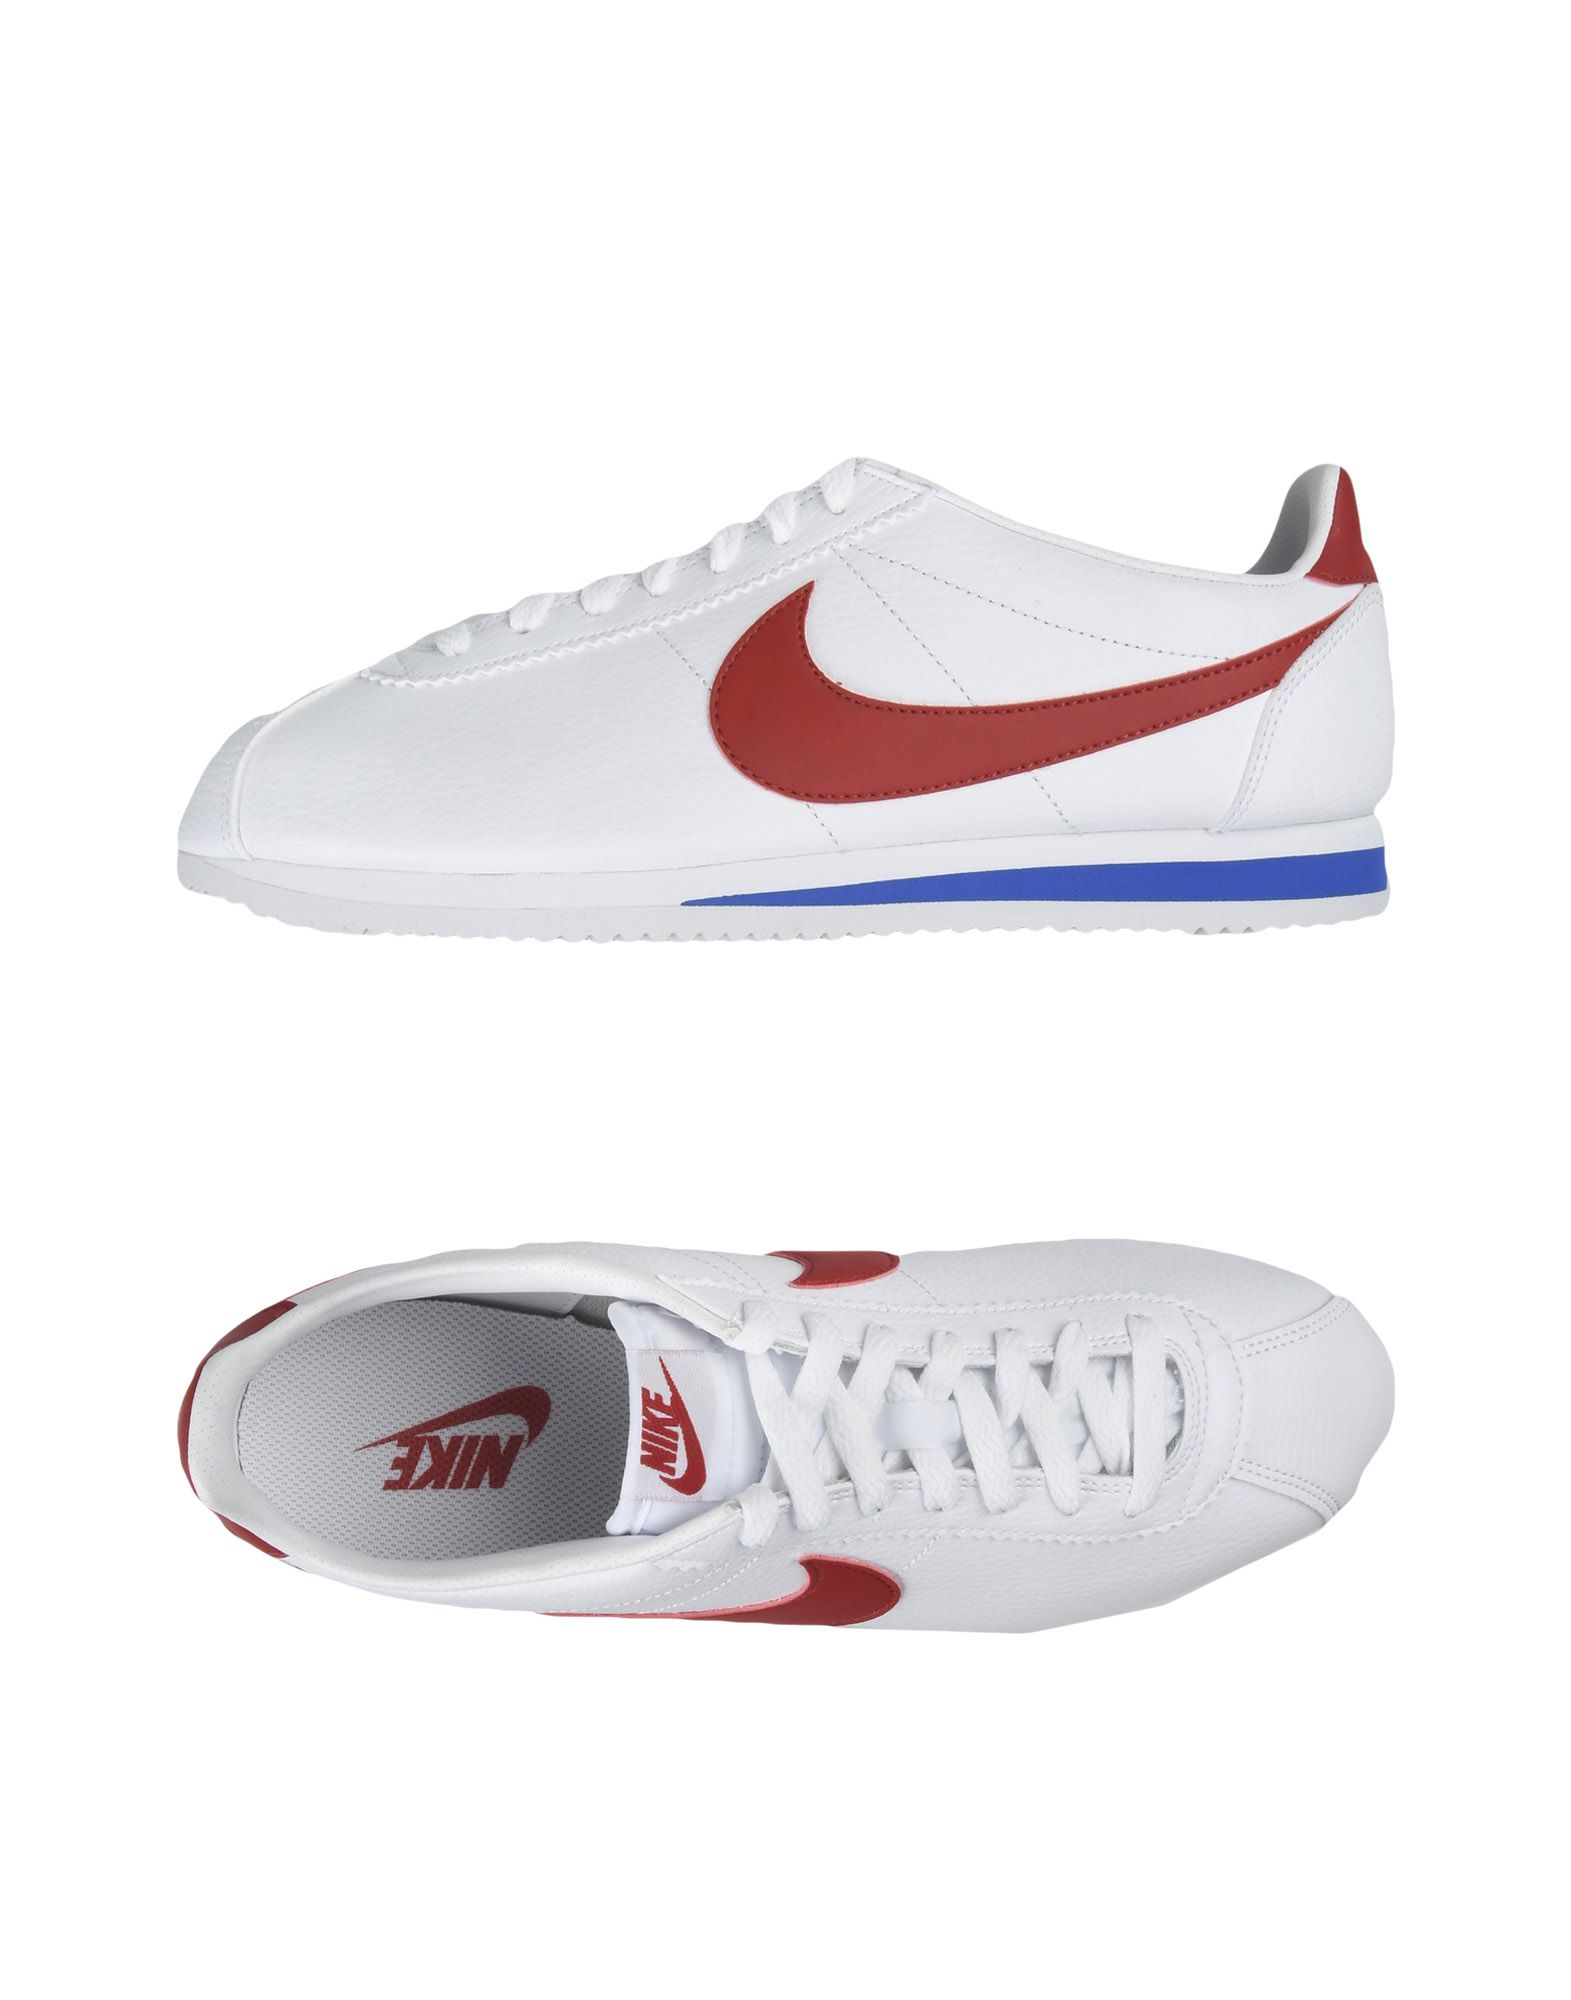 Sneakers Nike Classic Cortez Leather - Homme - Sneakers Nike sur